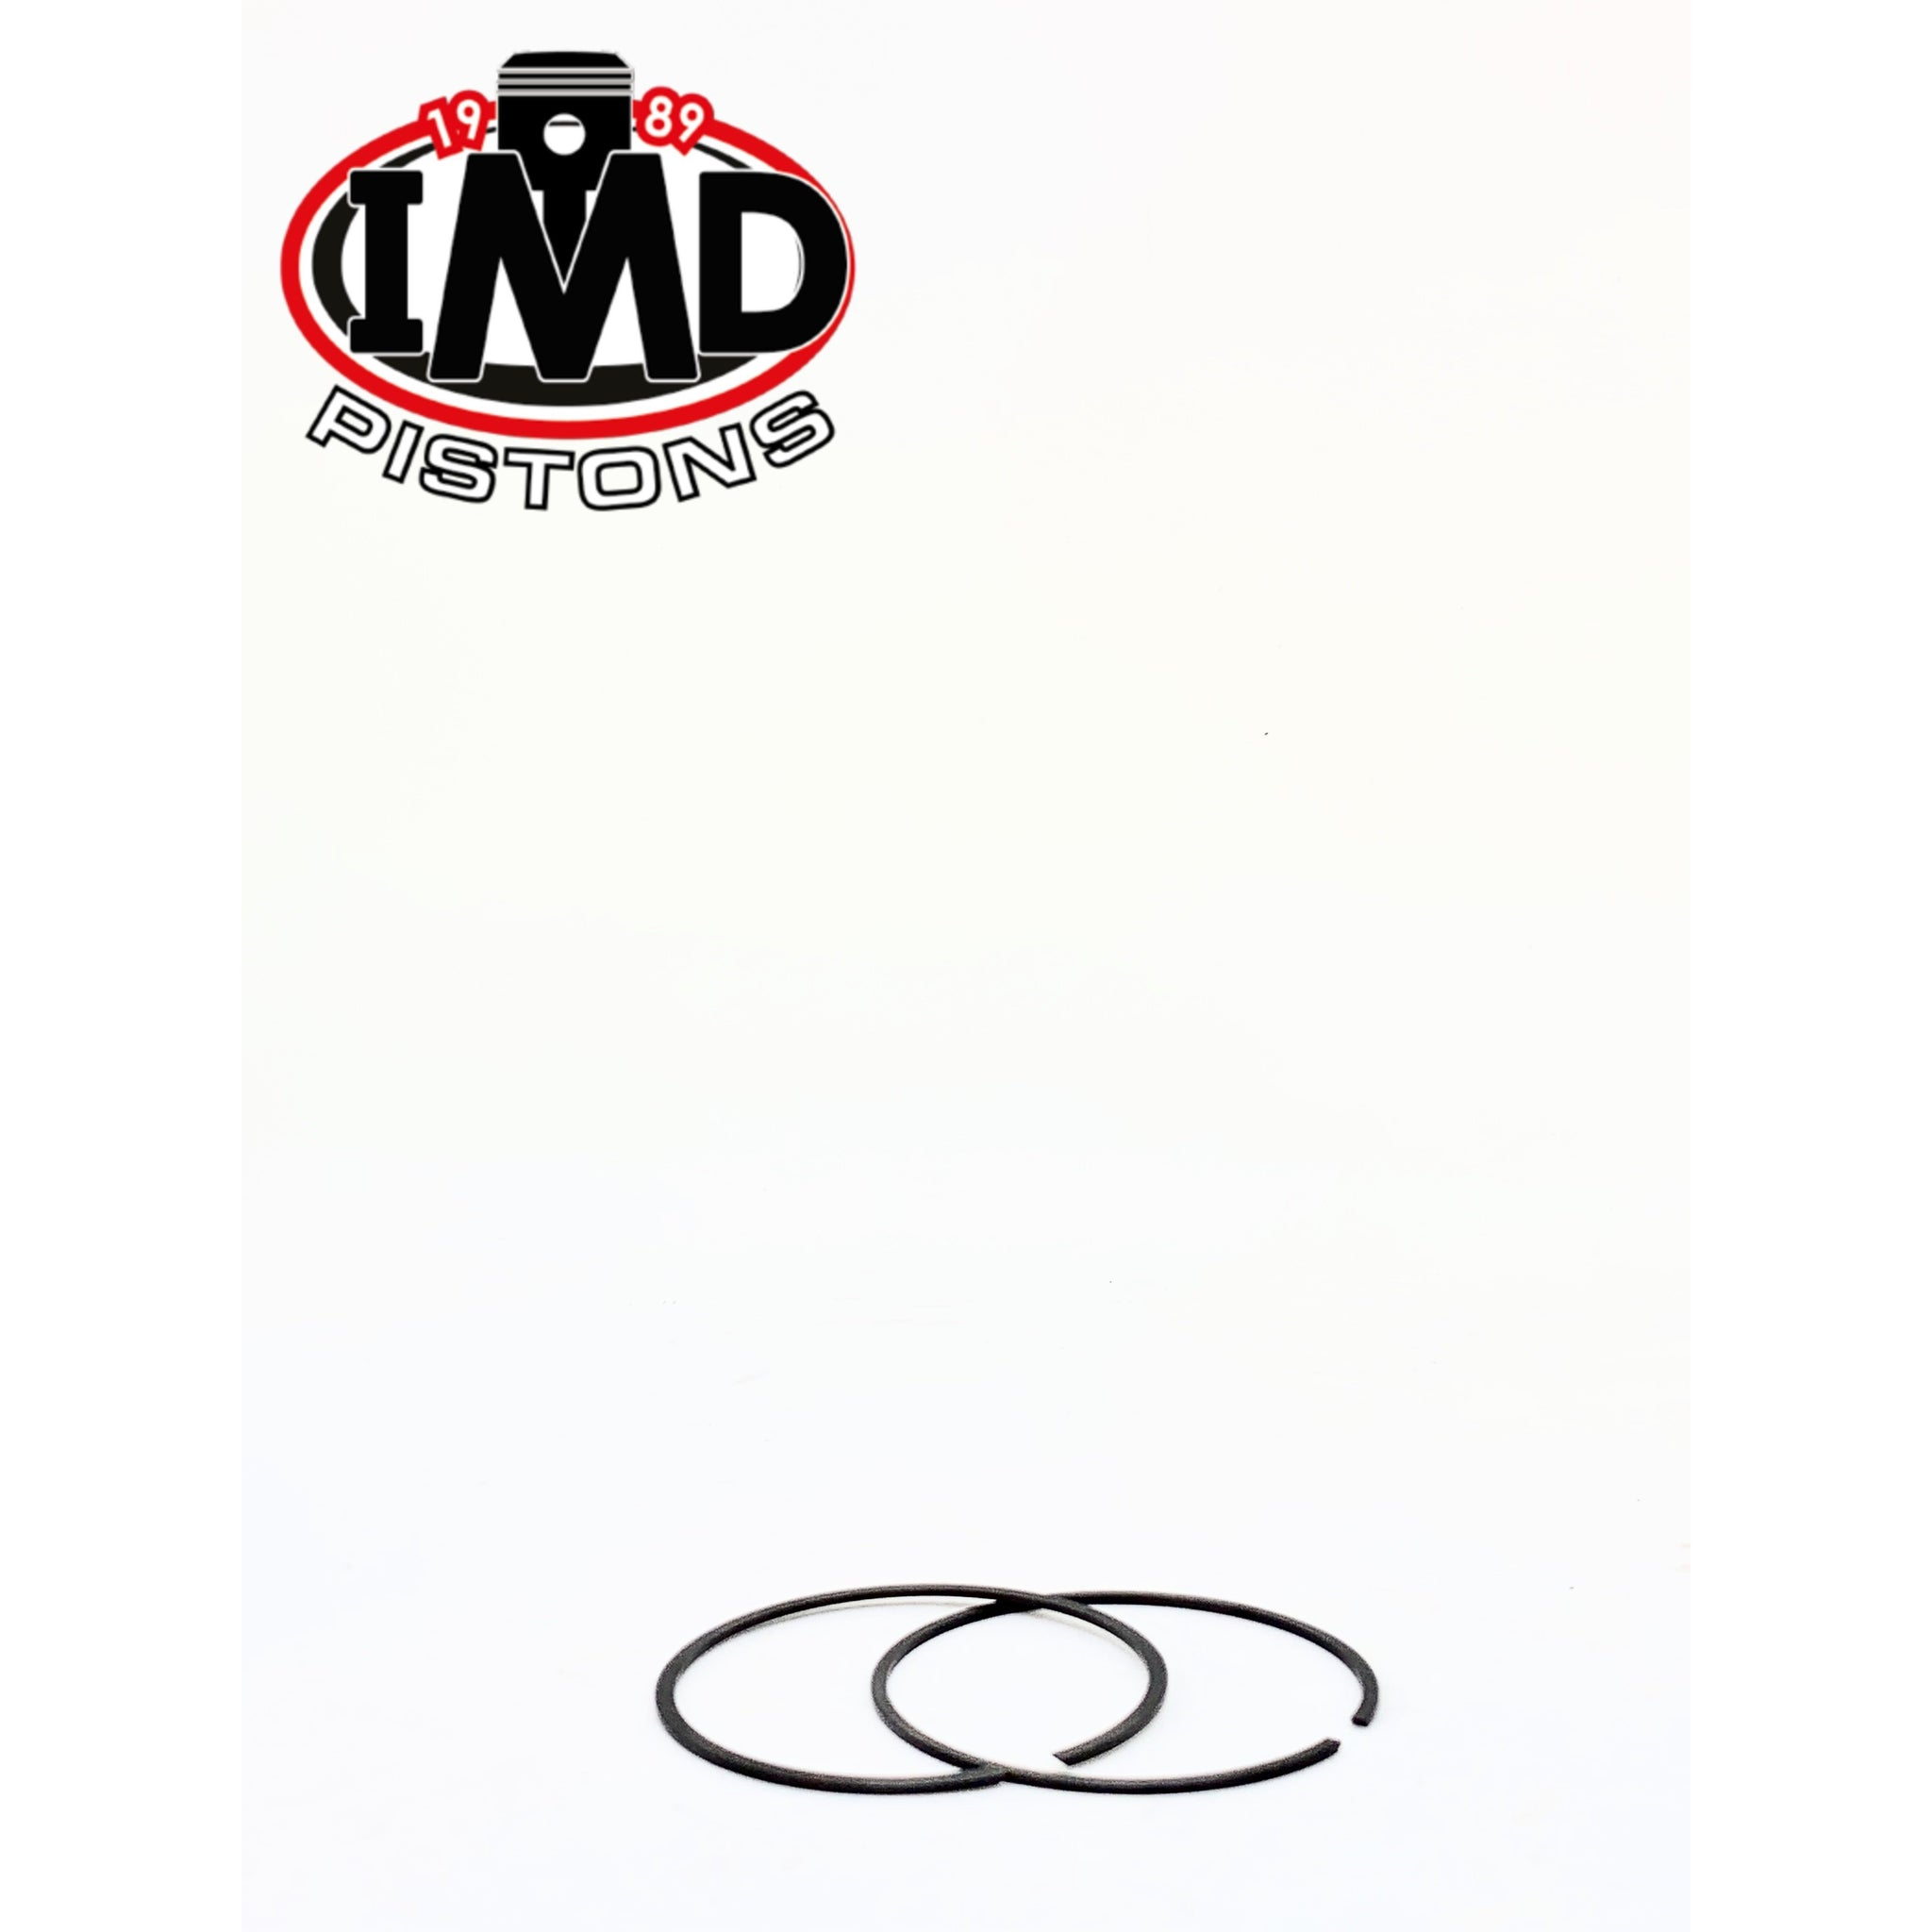 HONDA C70 ST70 CF70 PISTON RING SET - Piston Rings | IMD Pistons